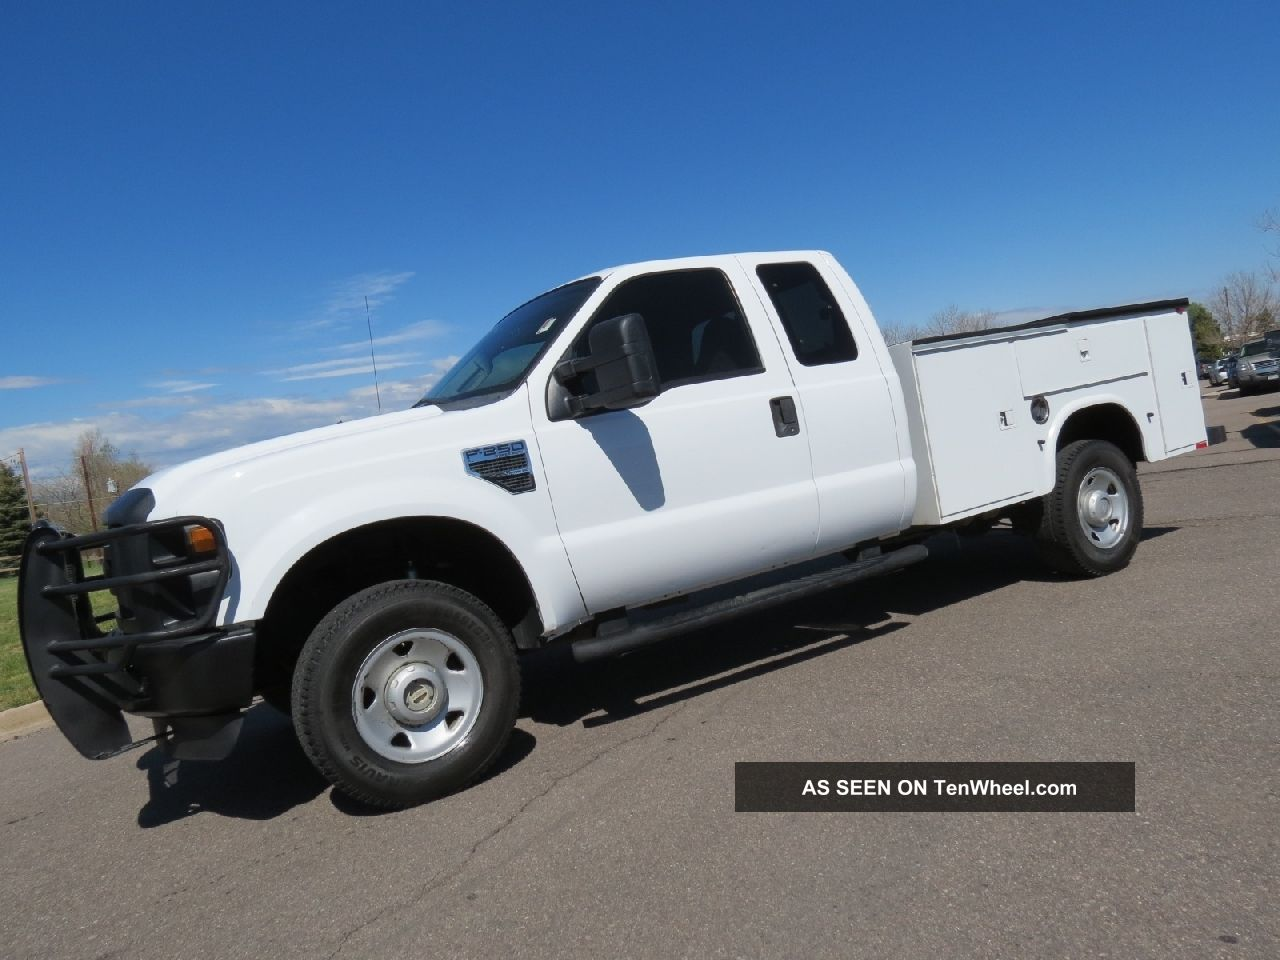 2008 Ford F - 250 Supercab Xl V10 4x4 Utility Work Service Body Bed Truck F-250 photo